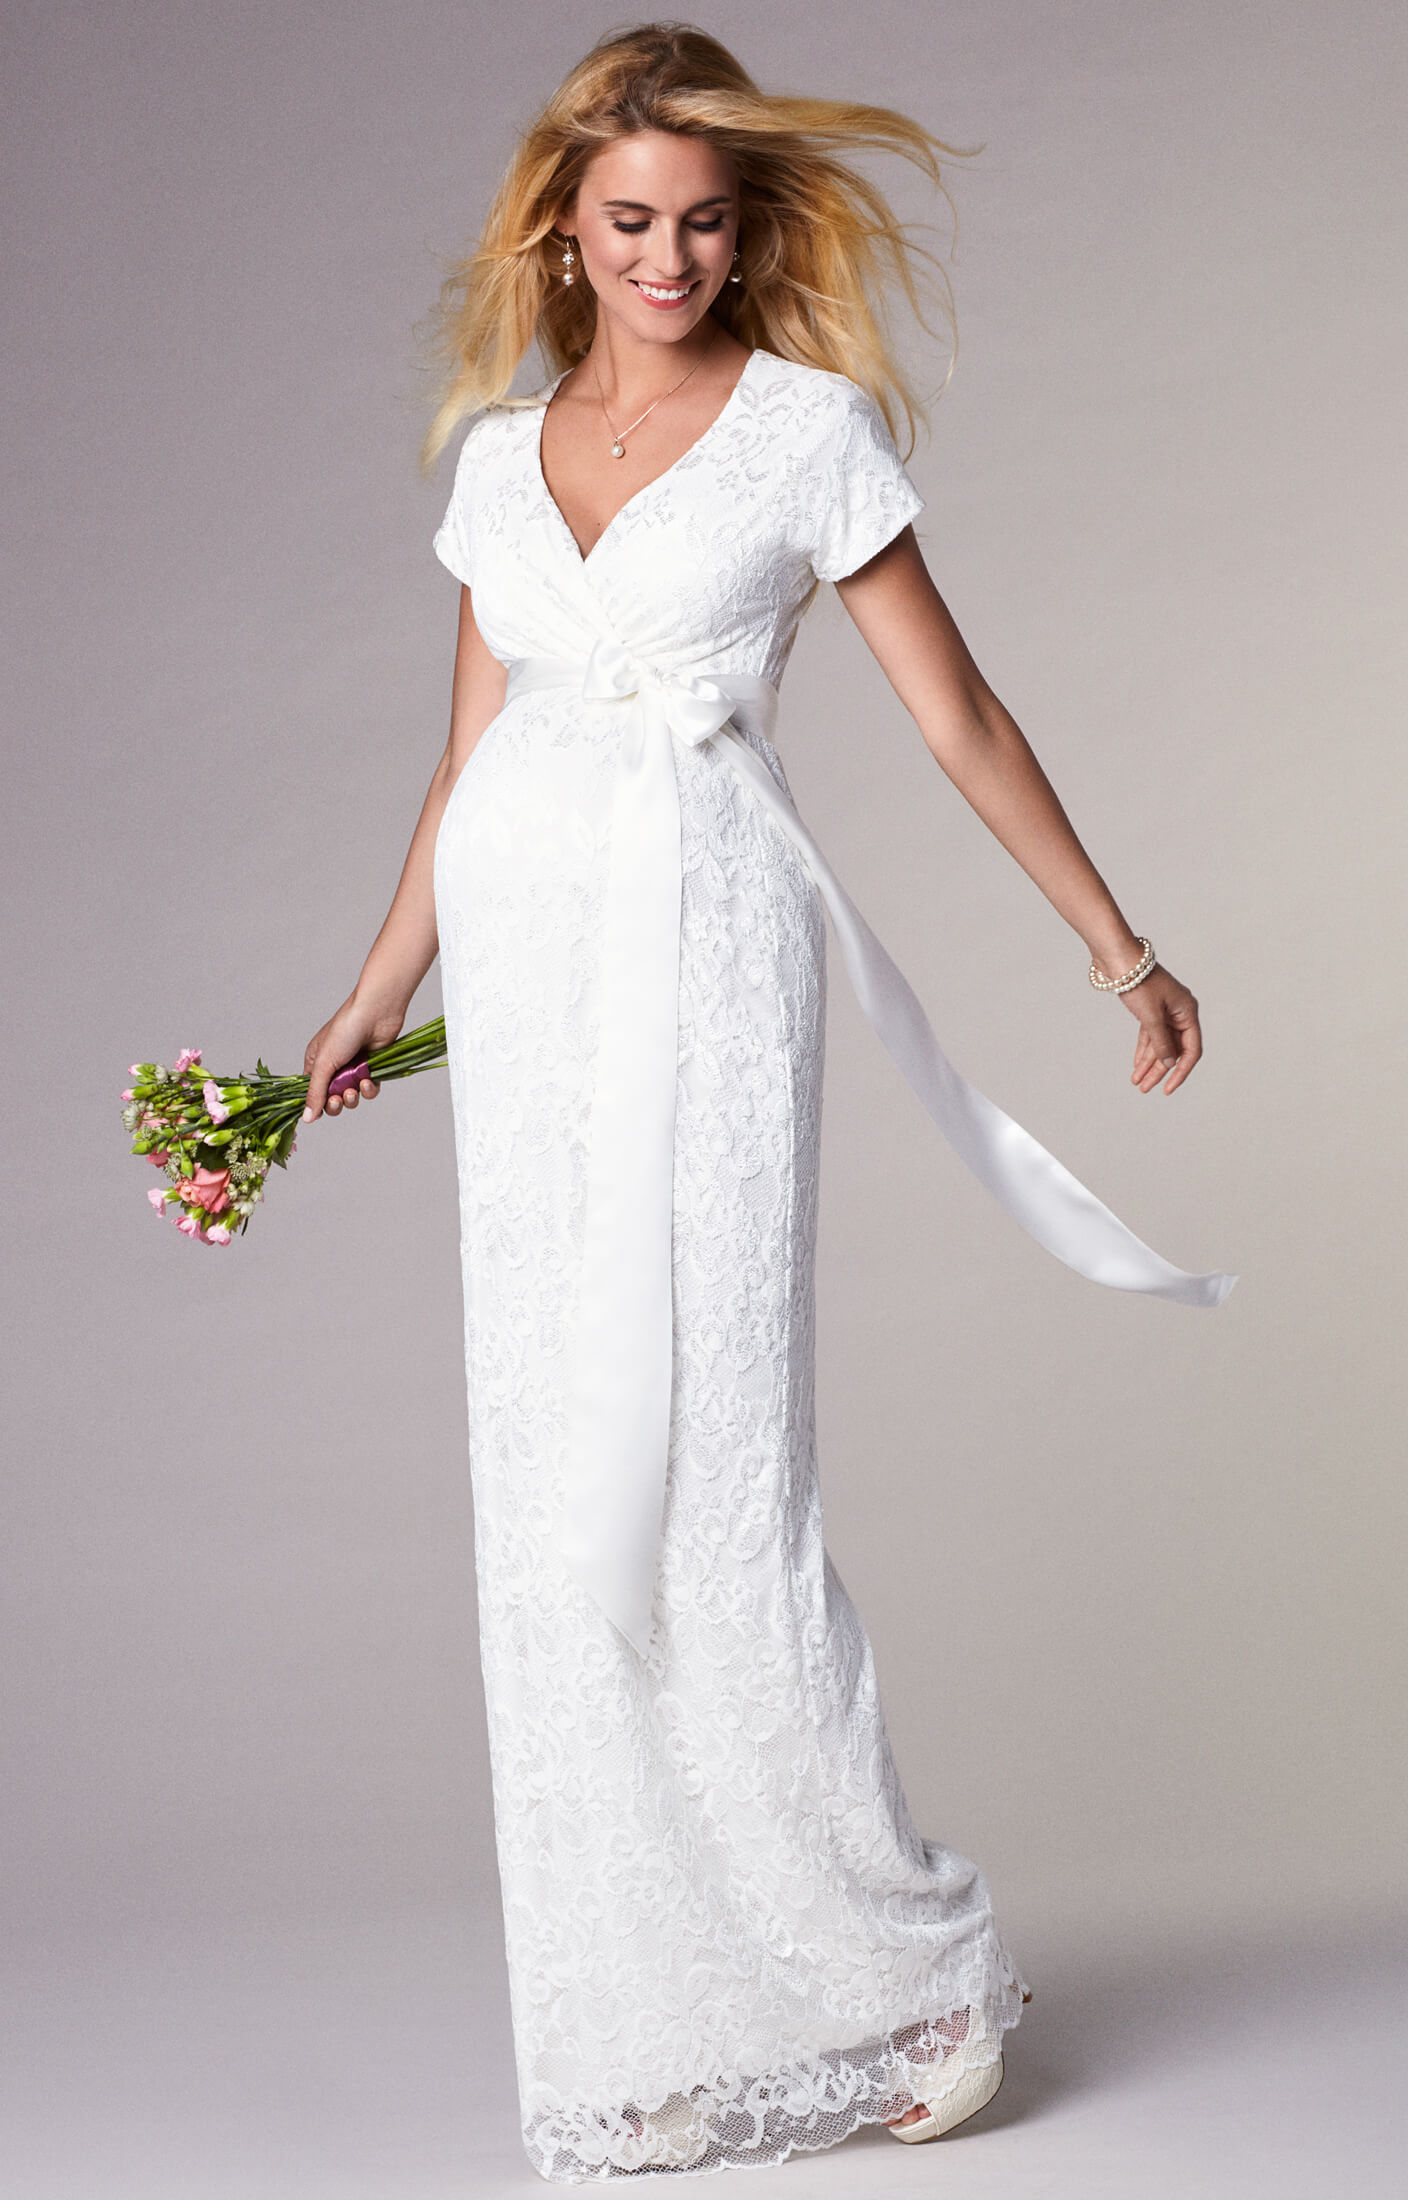 Bridget maternity wedding gown long ivory maternity wedding bridget maternity wedding gown long ivory by tiffany rose ombrellifo Gallery